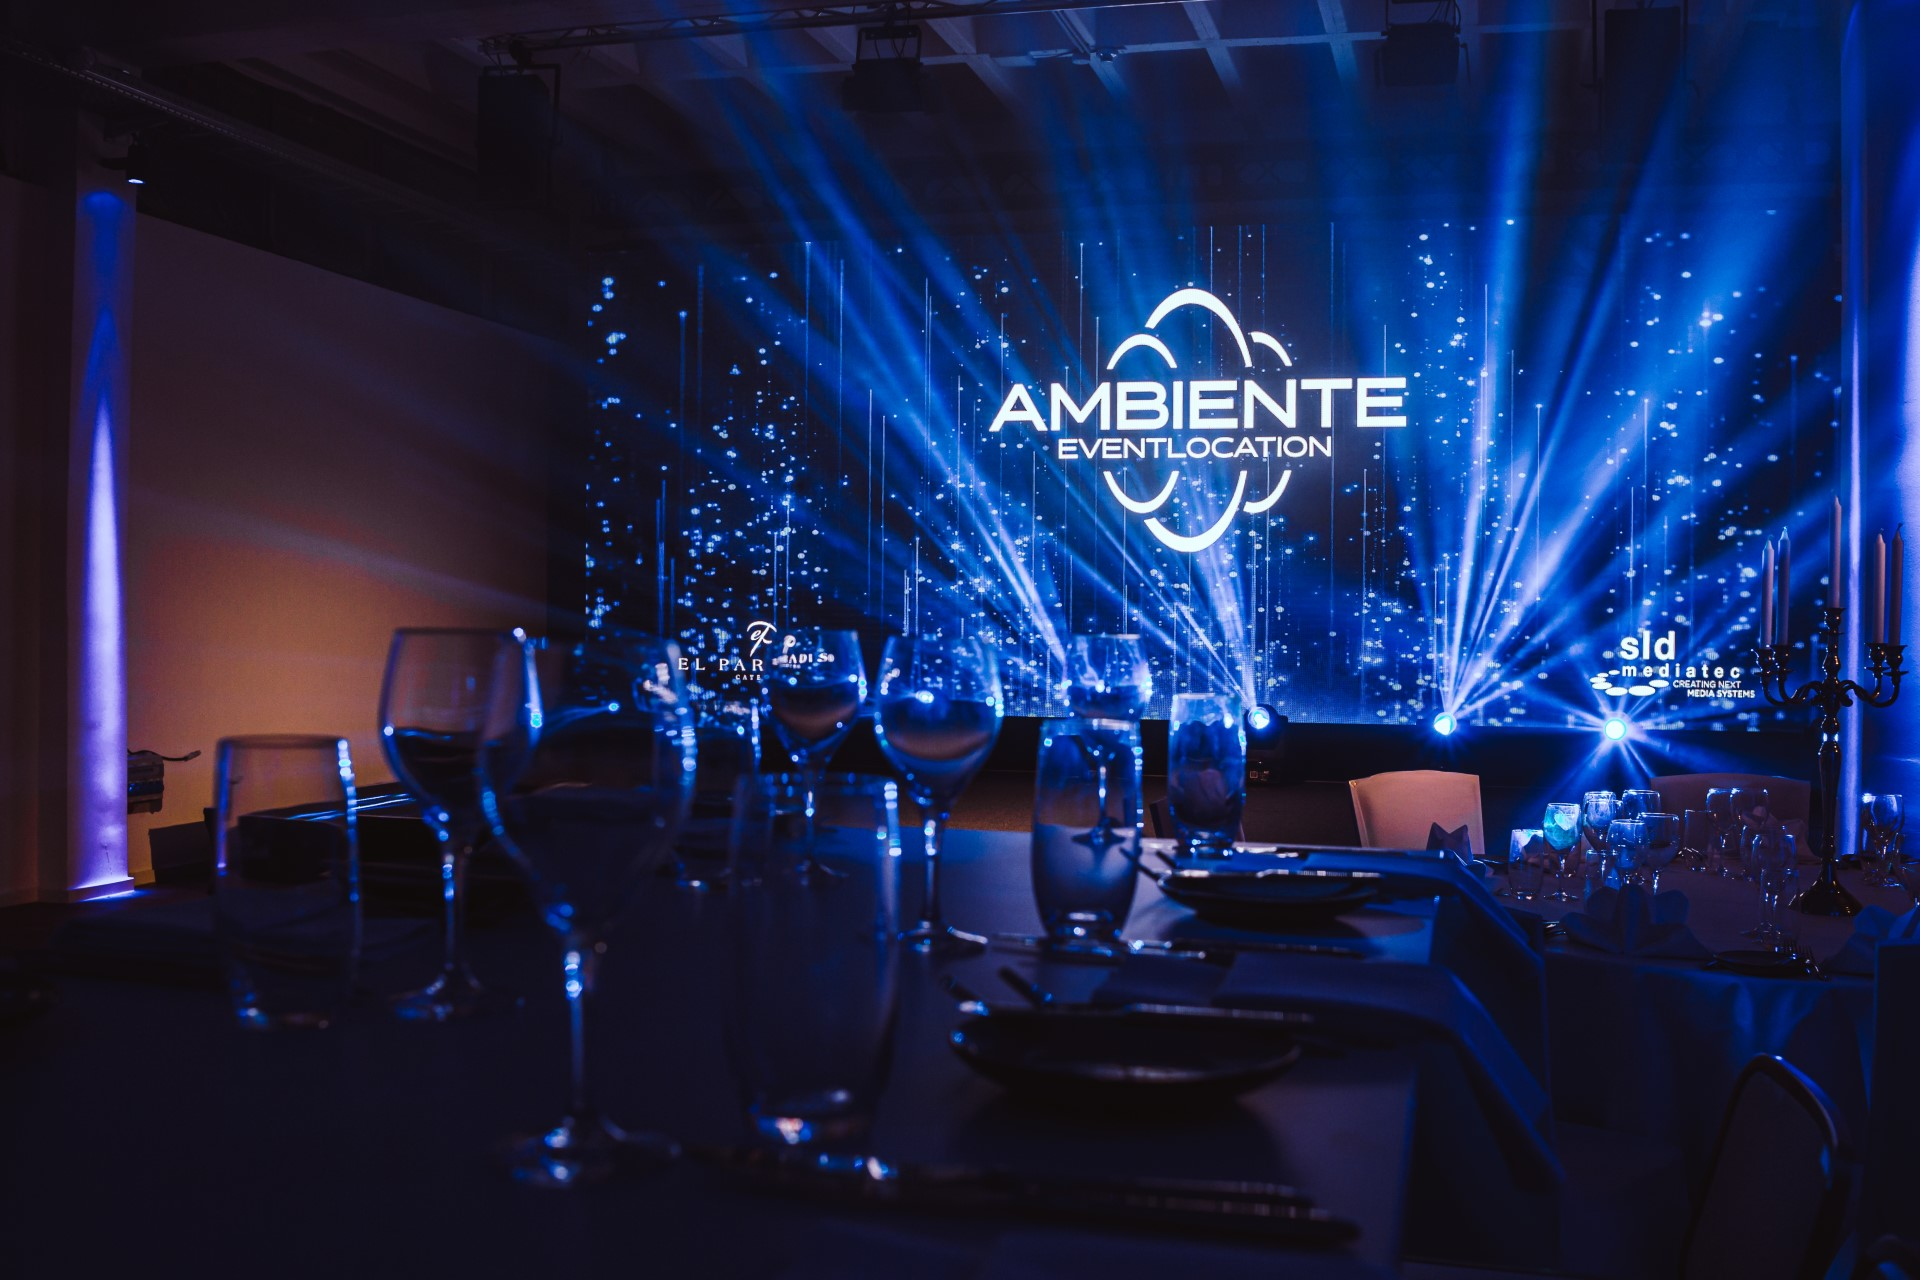 sld mediatec GmbH Ambiente event locations virtual studio